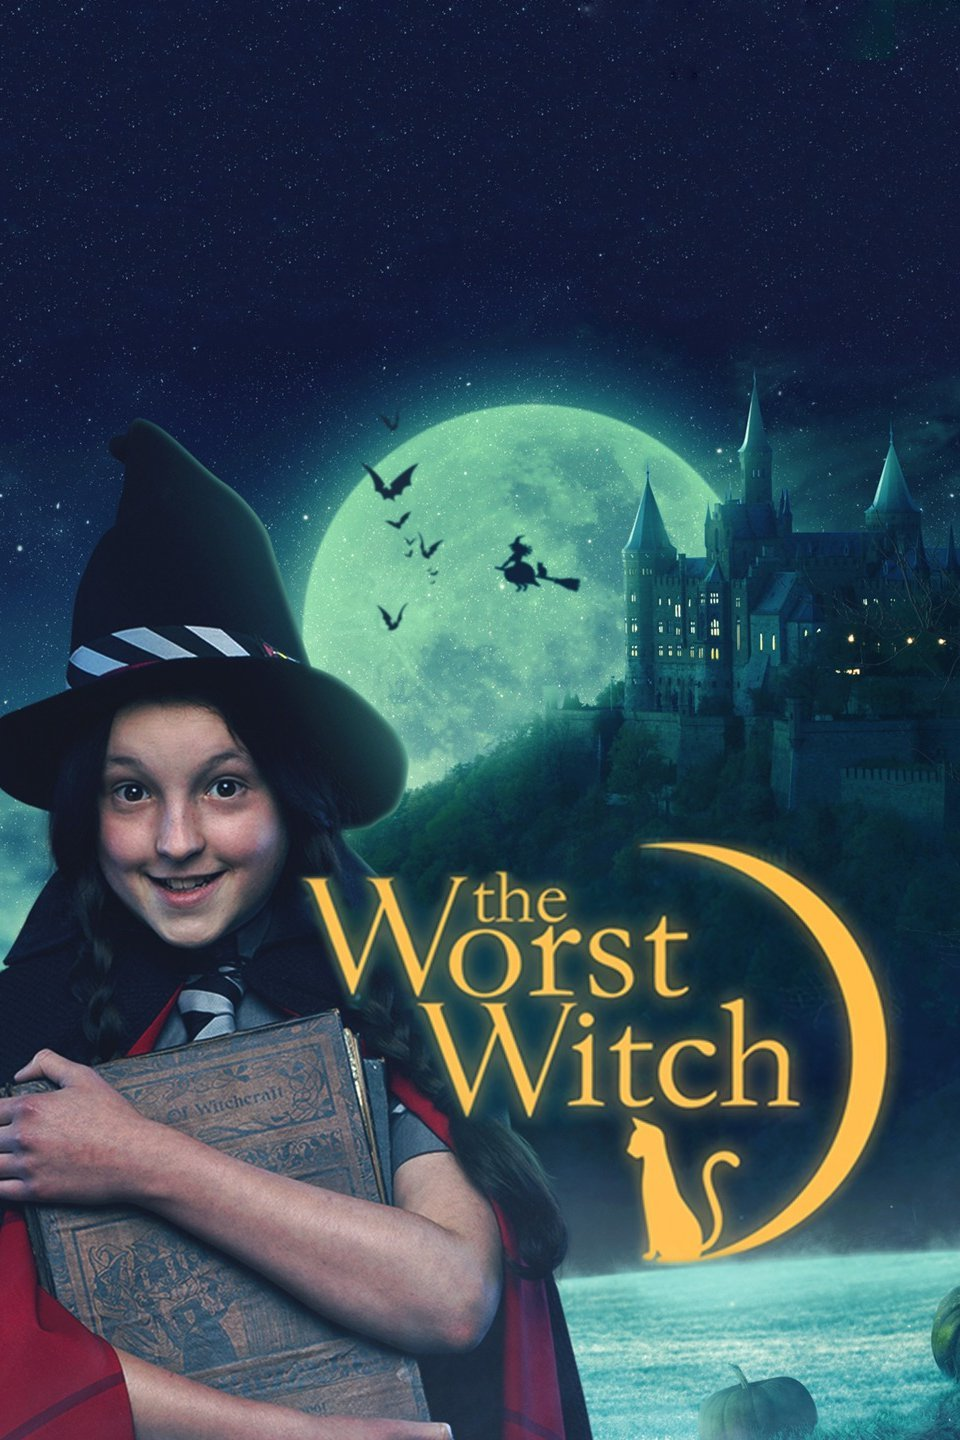 The Worst Witch S01 E10